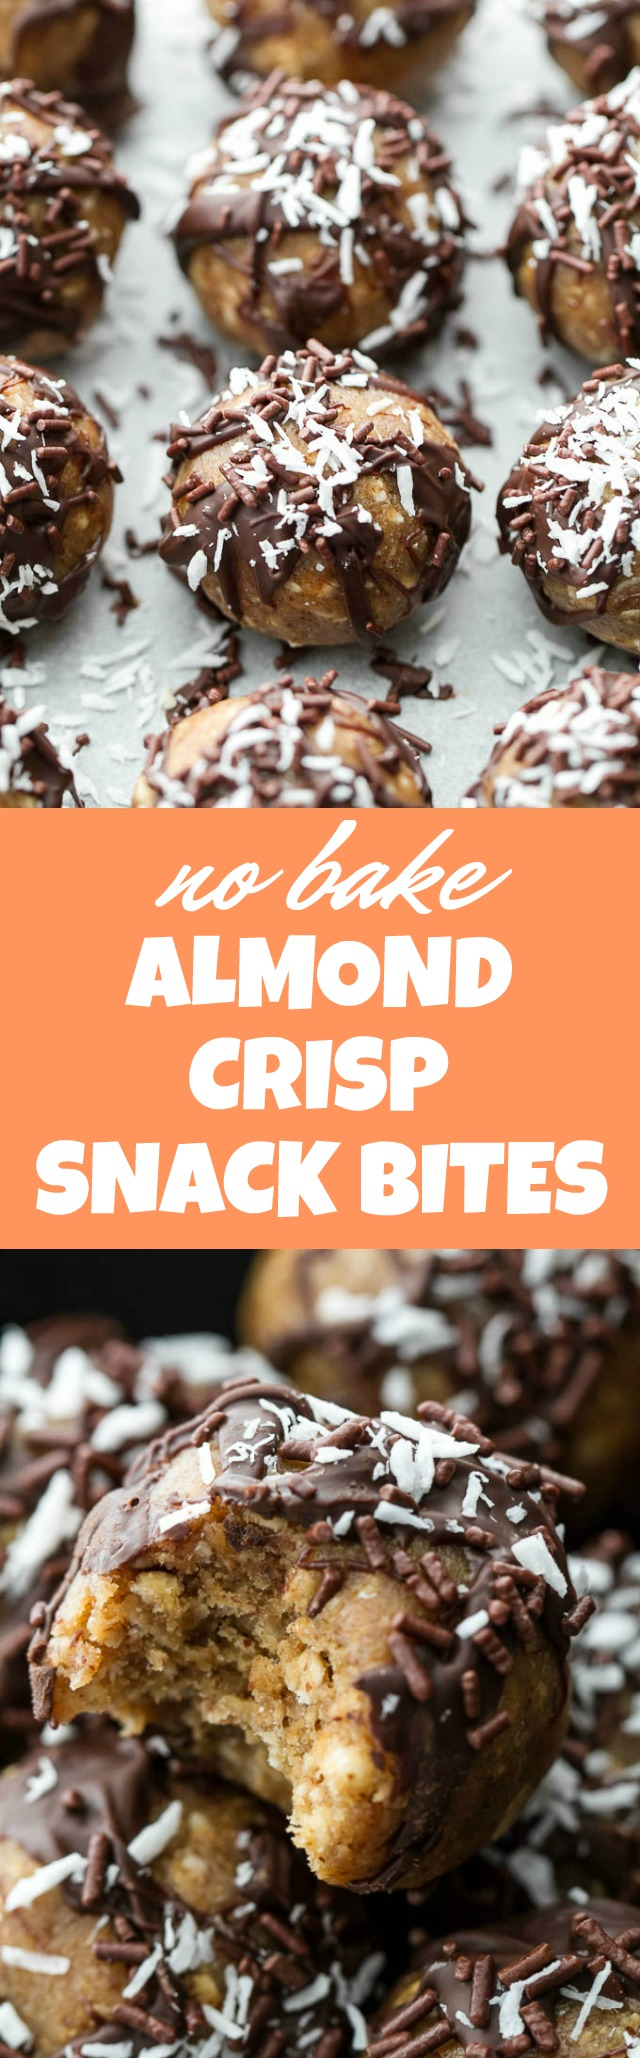 No Bake Almond Crisp Snack Bites that are super easy to make and loaded with healthy ingredients!! | runningwithspoons.com #glutenfree #vegan #snack #recipe